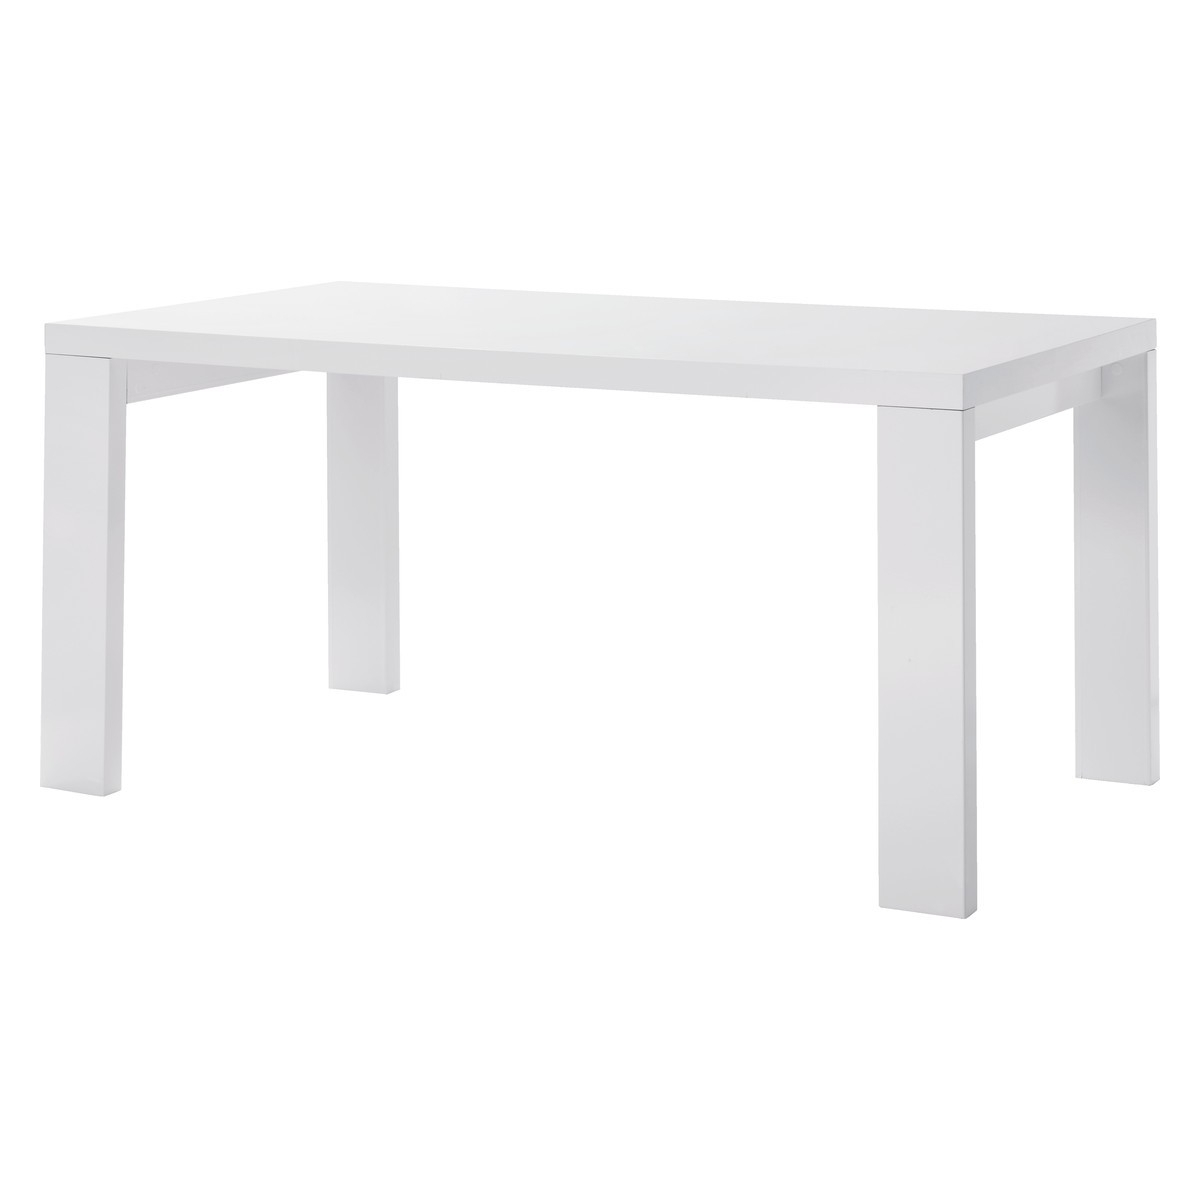 Buy Now At Habitat Uk Regarding High Gloss Round Dining Tables (View 10 of 25)